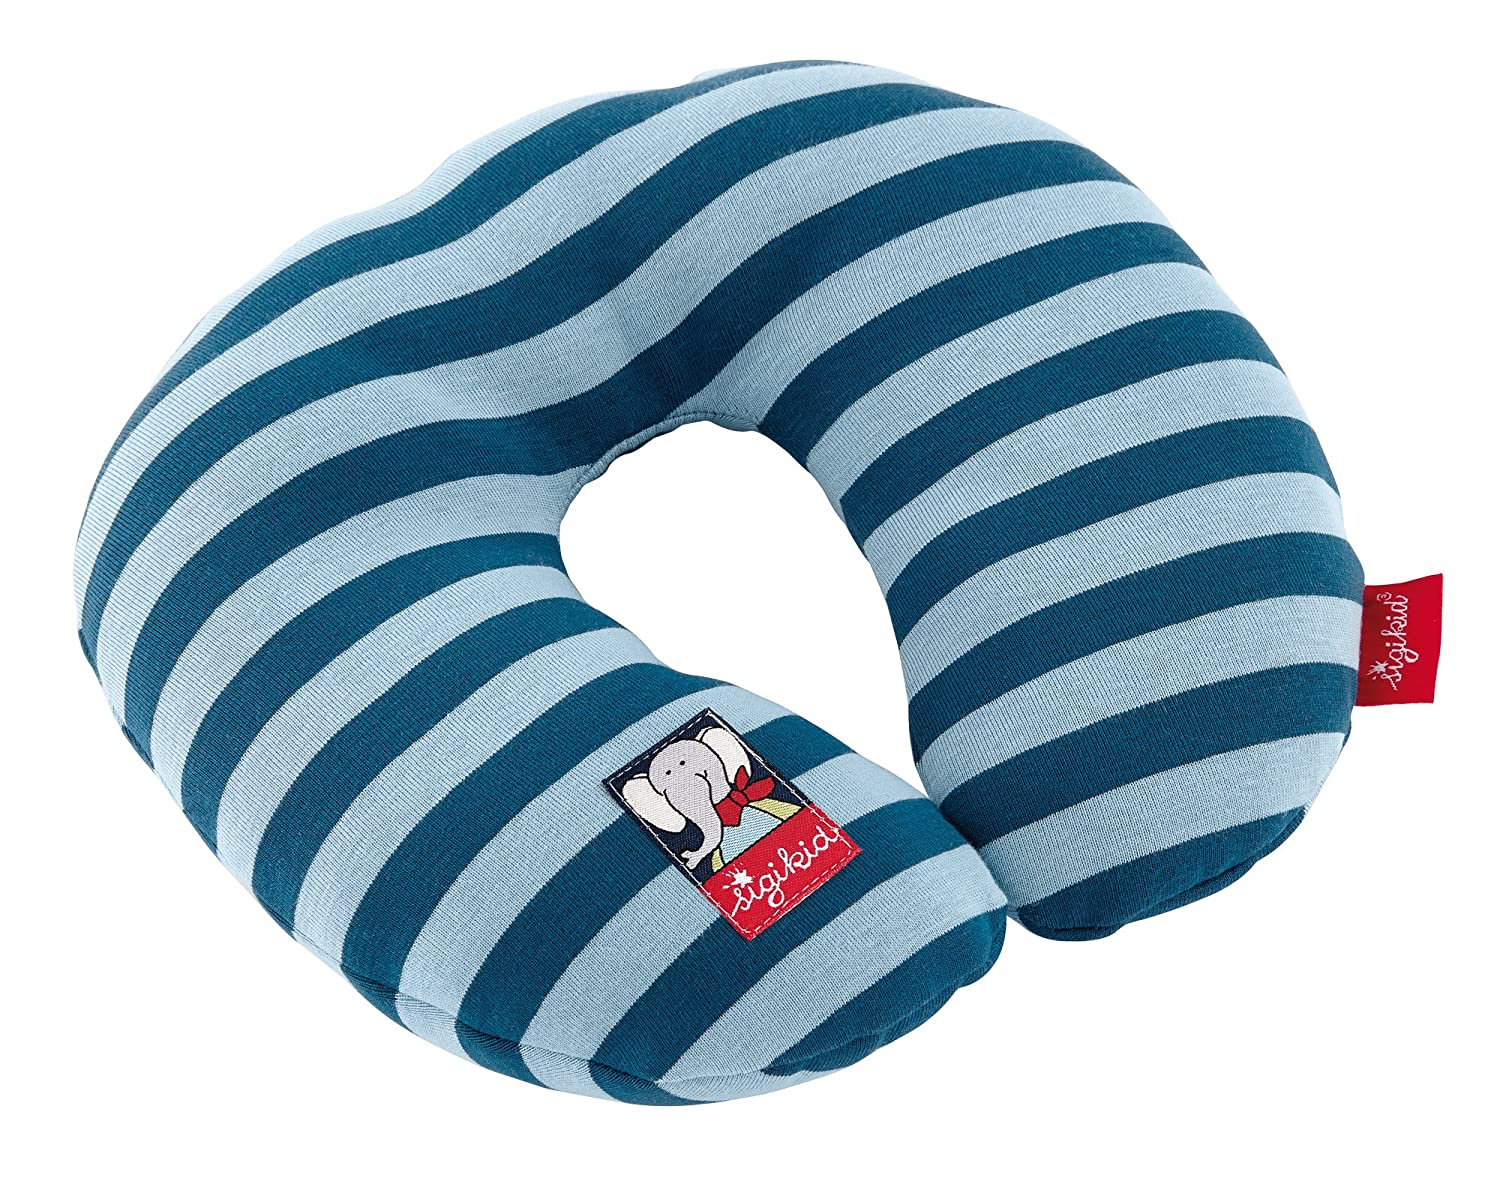 Sigikid Schnuggi Neck Pillow (25 x 25 x 6 cm) 40833